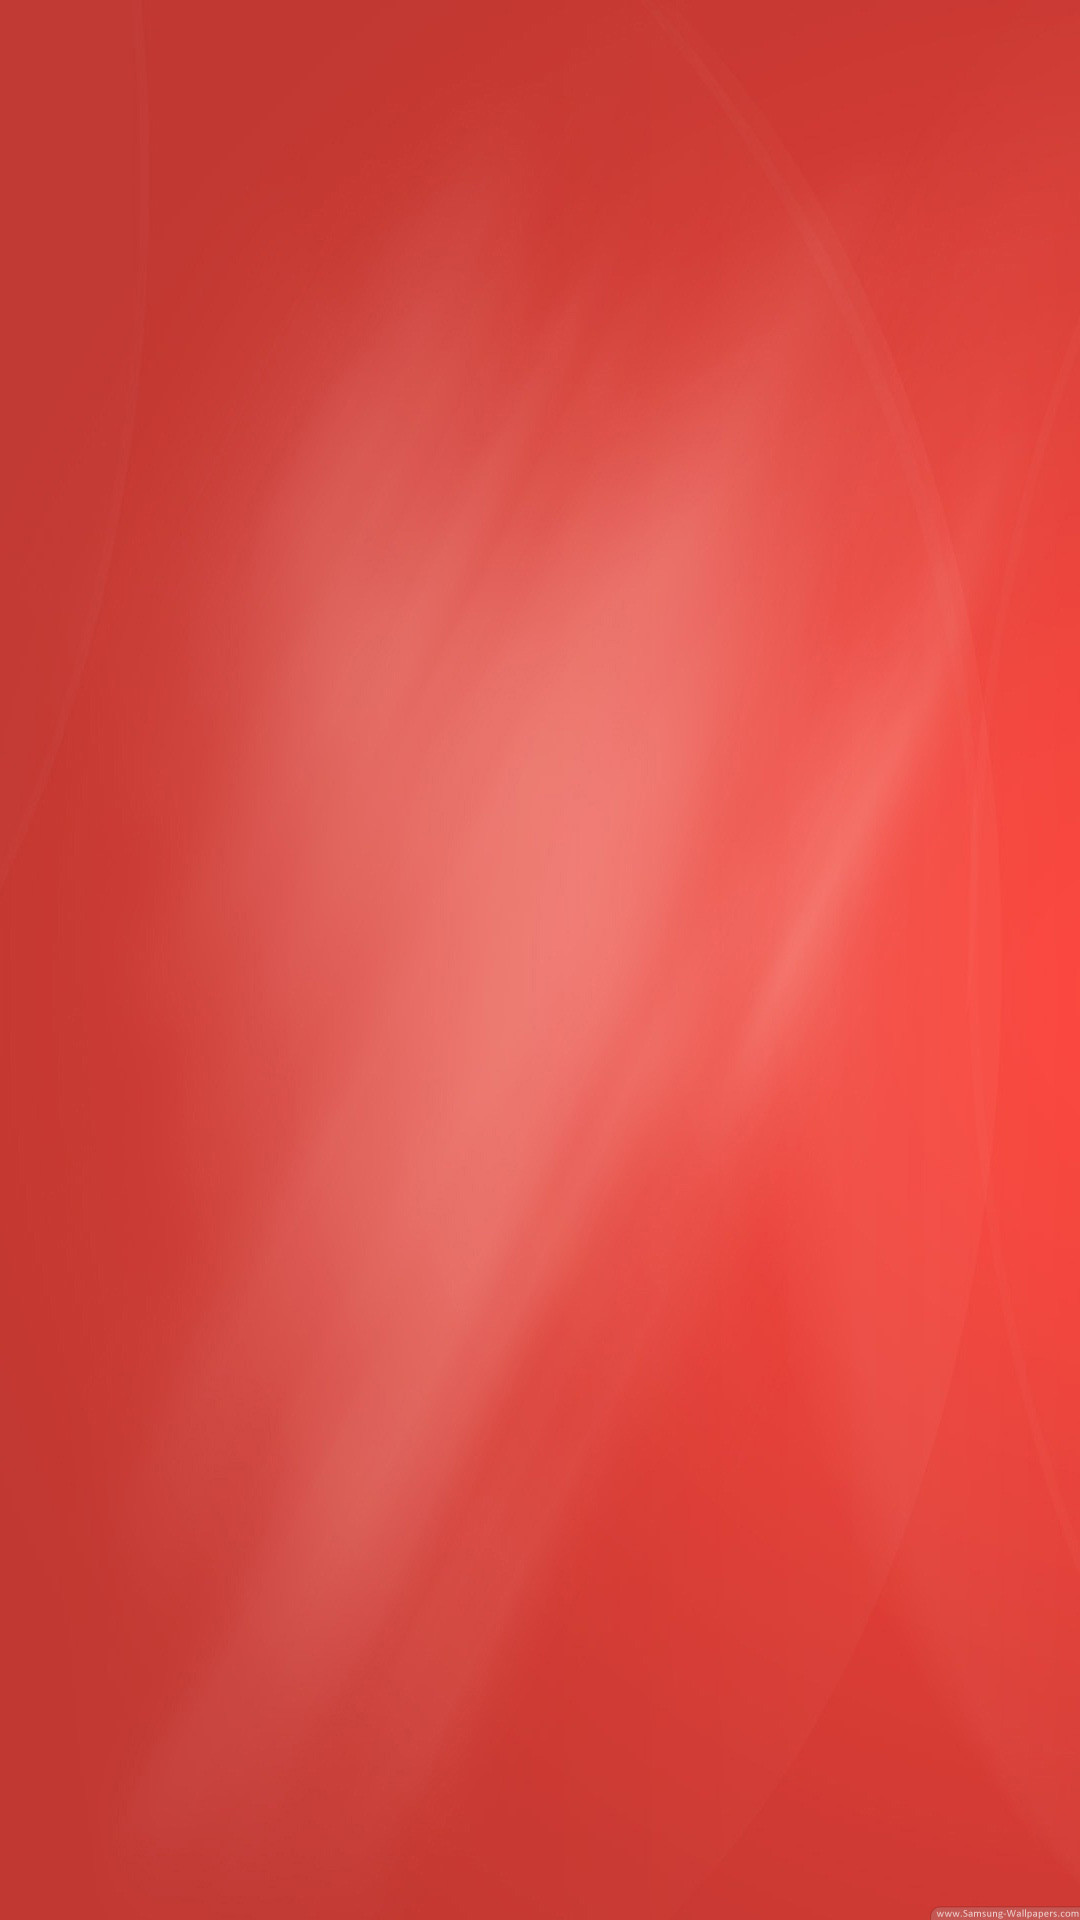 Simple Red Angled Gradient iPhone 6 Plus HD Wallpaper …